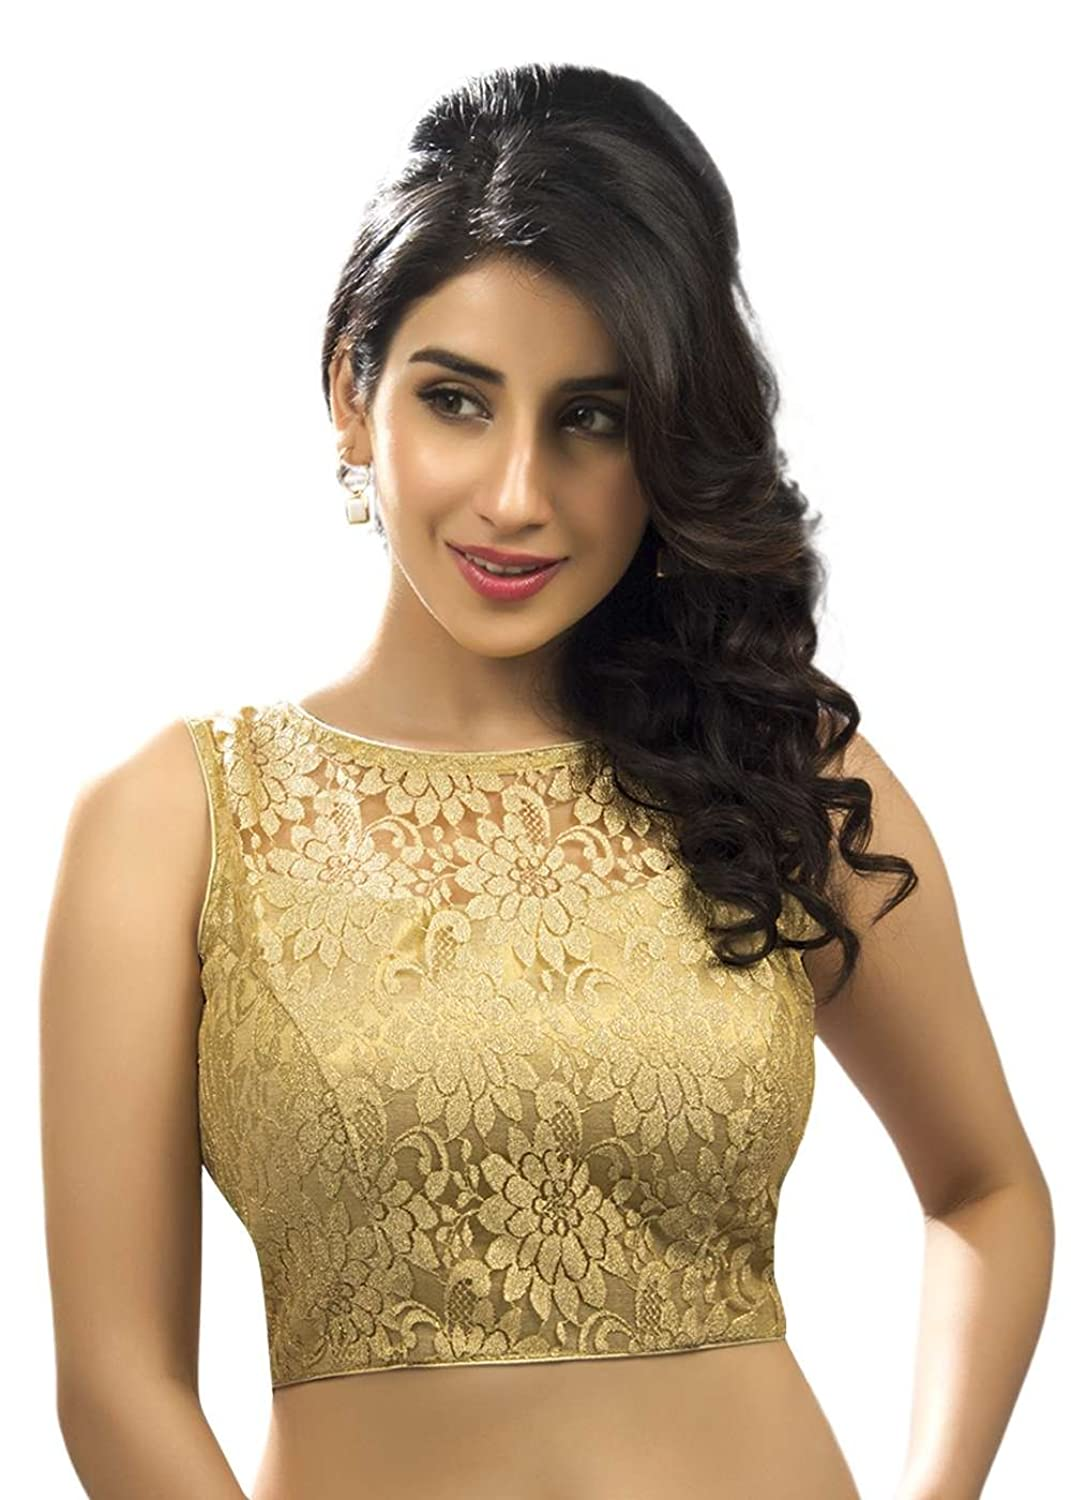 fef0ee3eb9ca99 Fancy sleeveless gold net fabric saree blouse made in fine zari floral net  fabric. Transparentánet at the neckline. Two hooks at the back forming a  keyhole ...